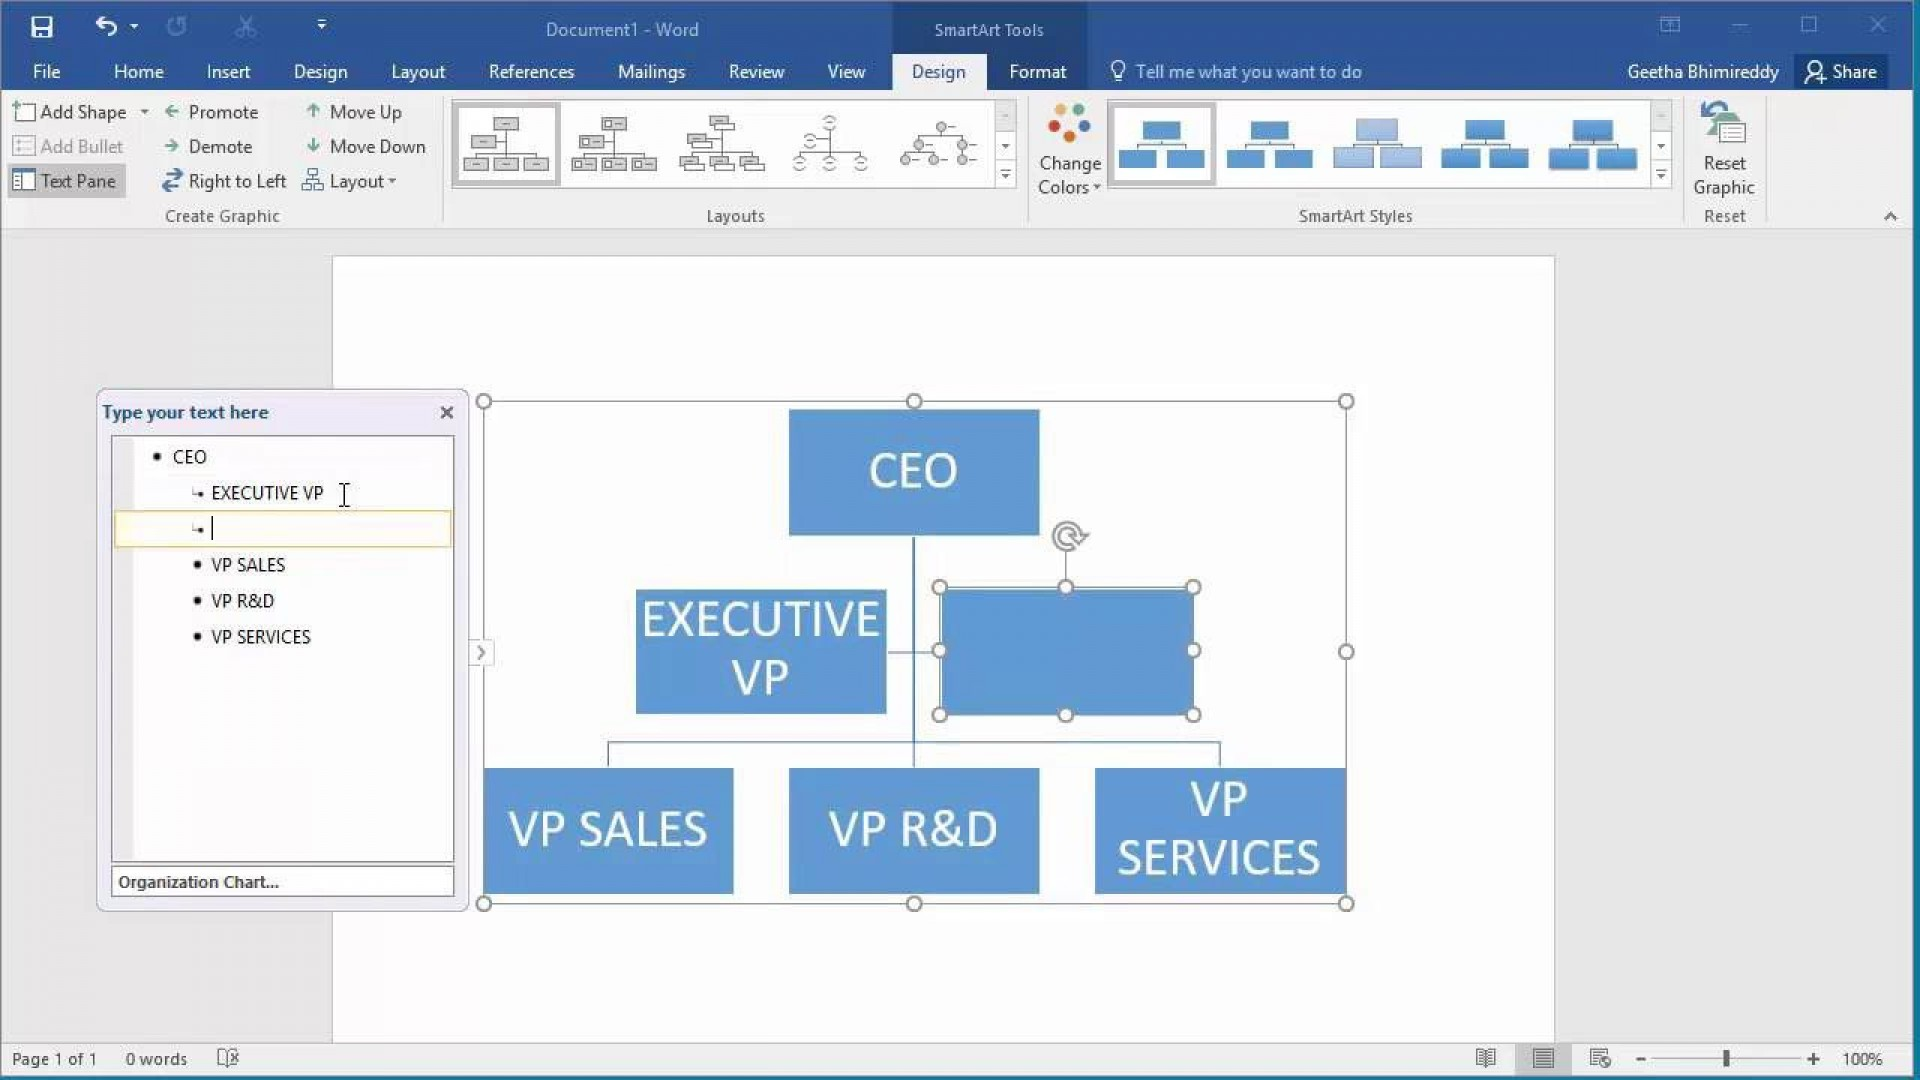 003 Sensational Organizational Chart Template Word Sample  2010 2007 Free Download1920